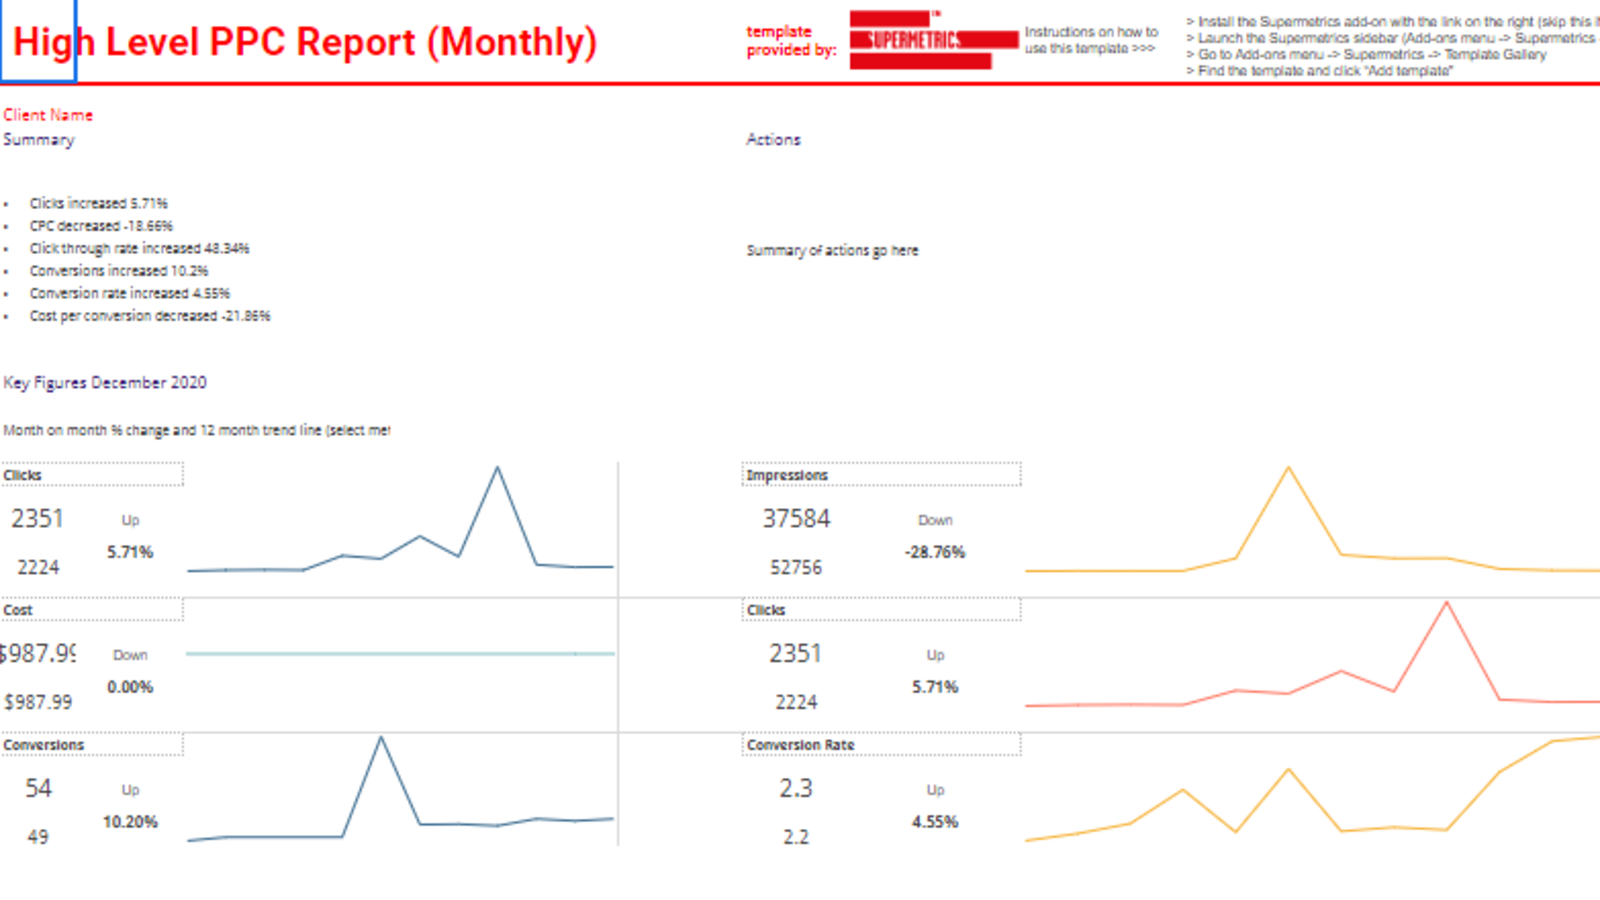 Google Ads high-level monthly report for Google Sheets